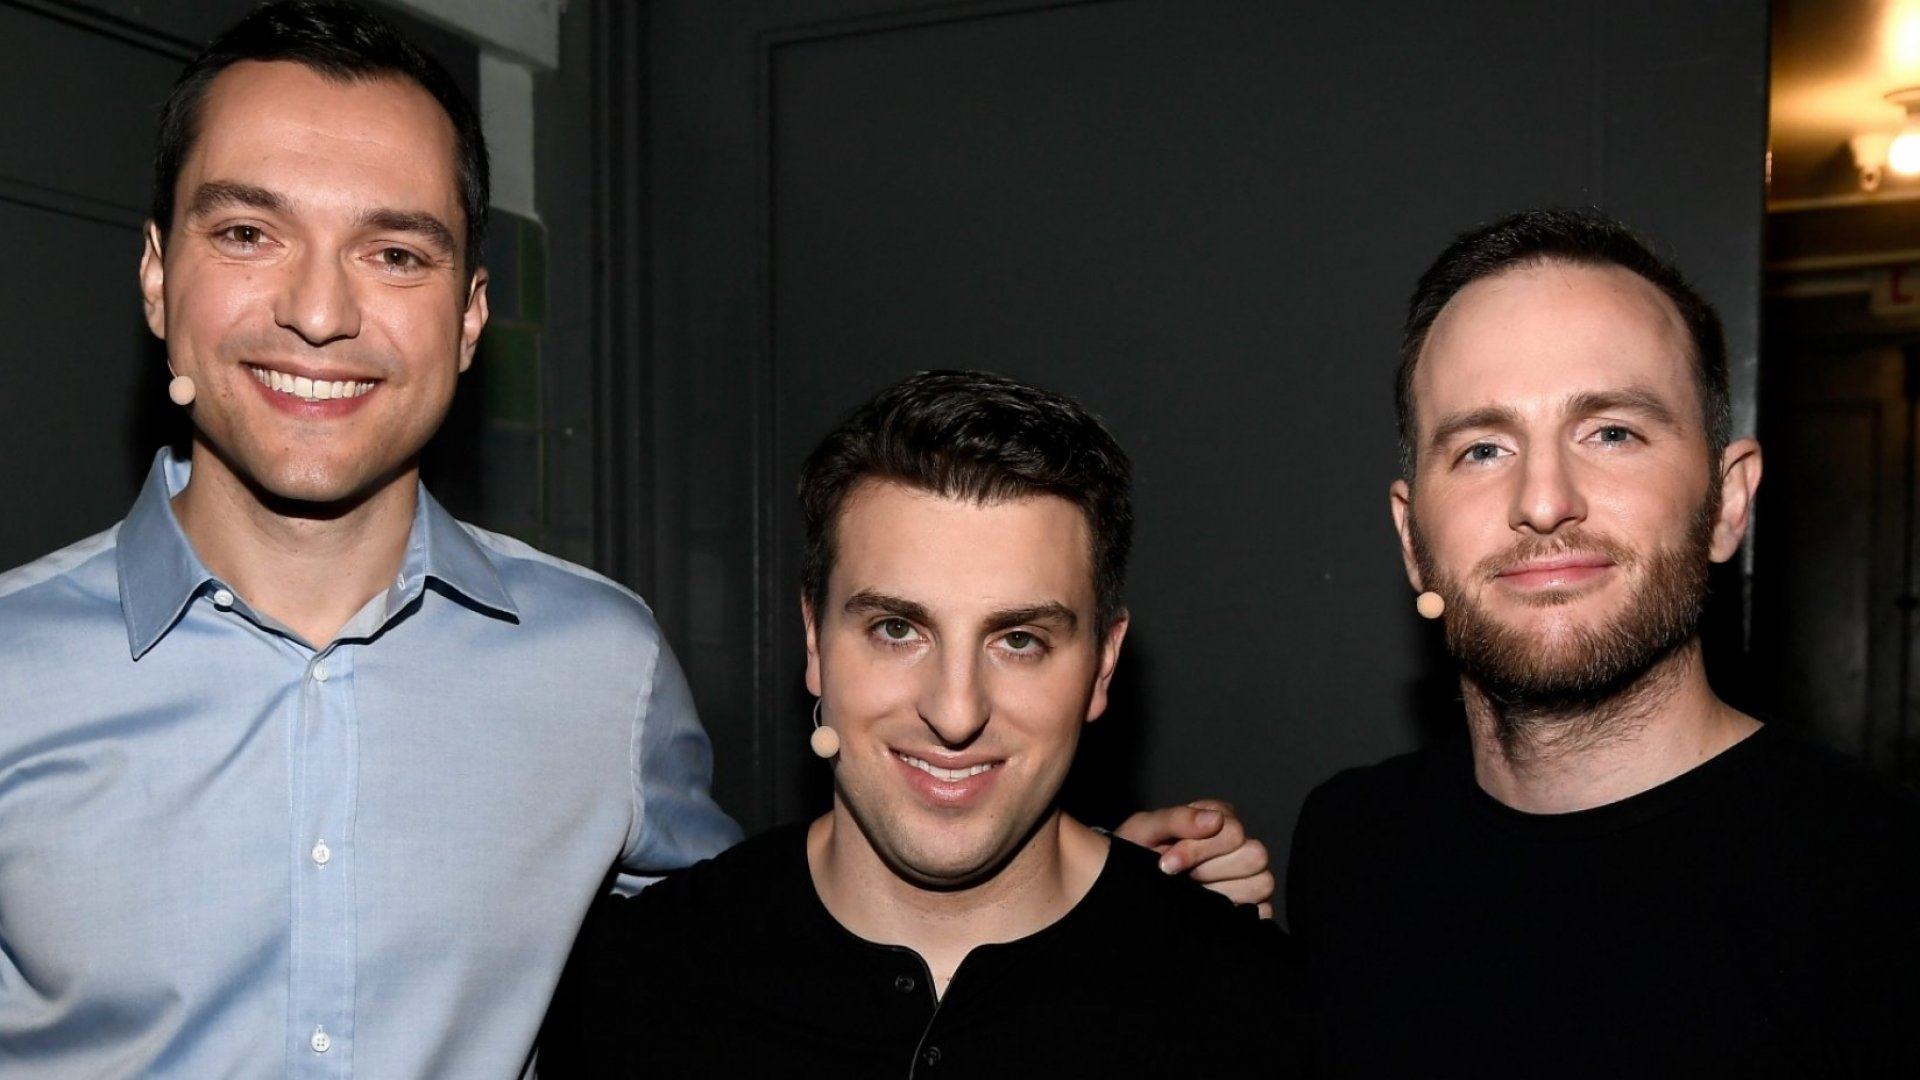 Airbnb founders Nathan Blecharczyk, Brian Chesky, and Joe Gebbia.